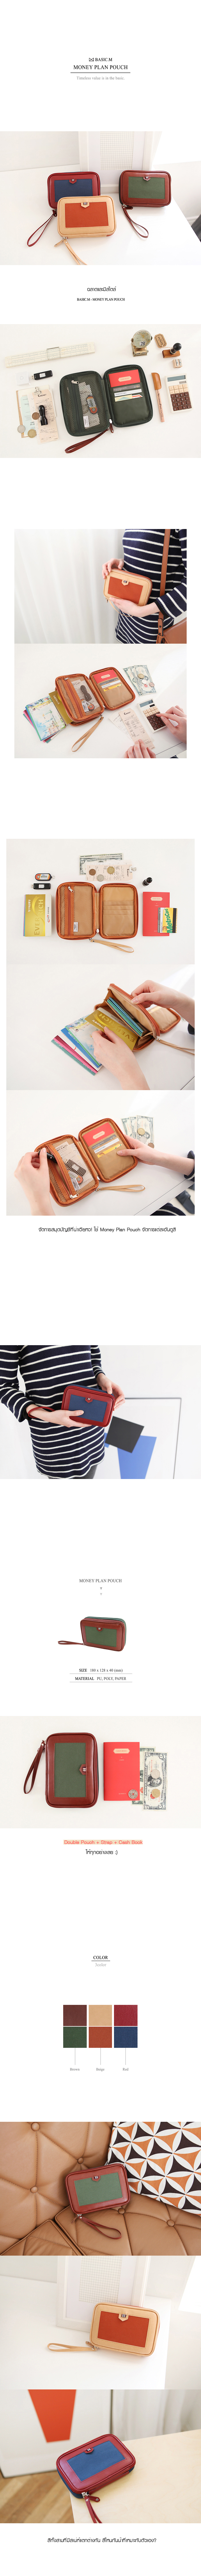 basicm-money-pouch-info1.jpg